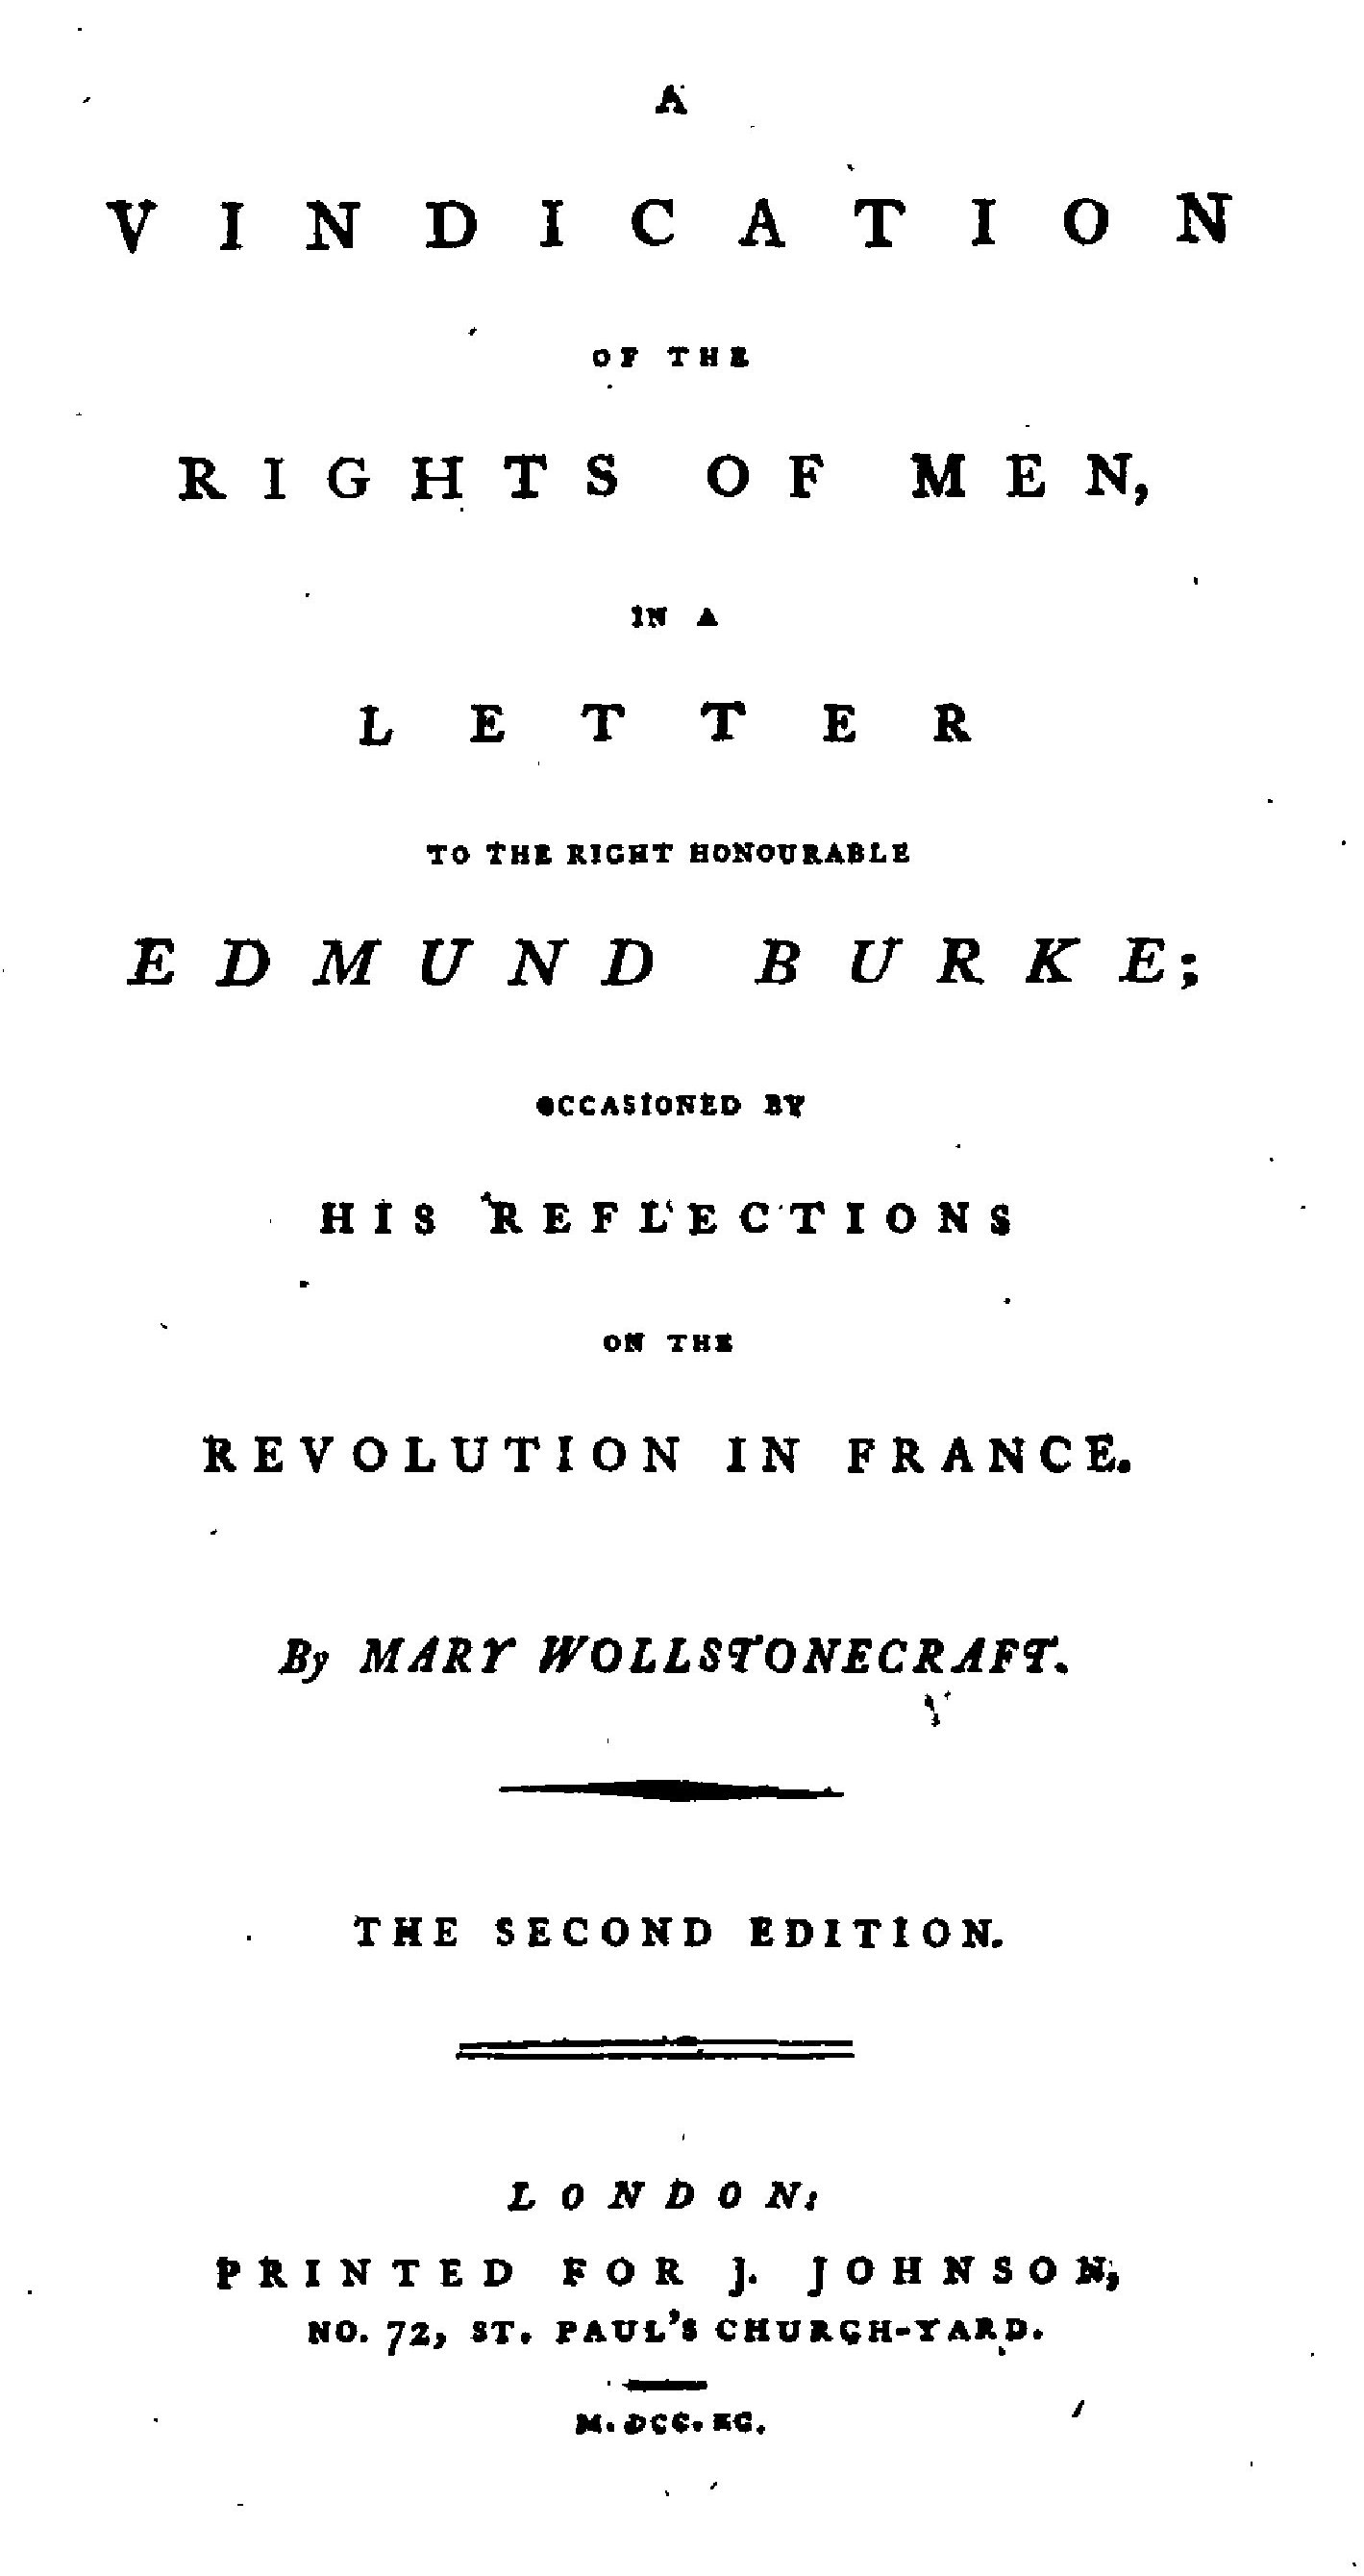 a vindication of the rights of men by wollstonecraft a vindication of the rights of men by wollstonecraft advertisement regency writings repository